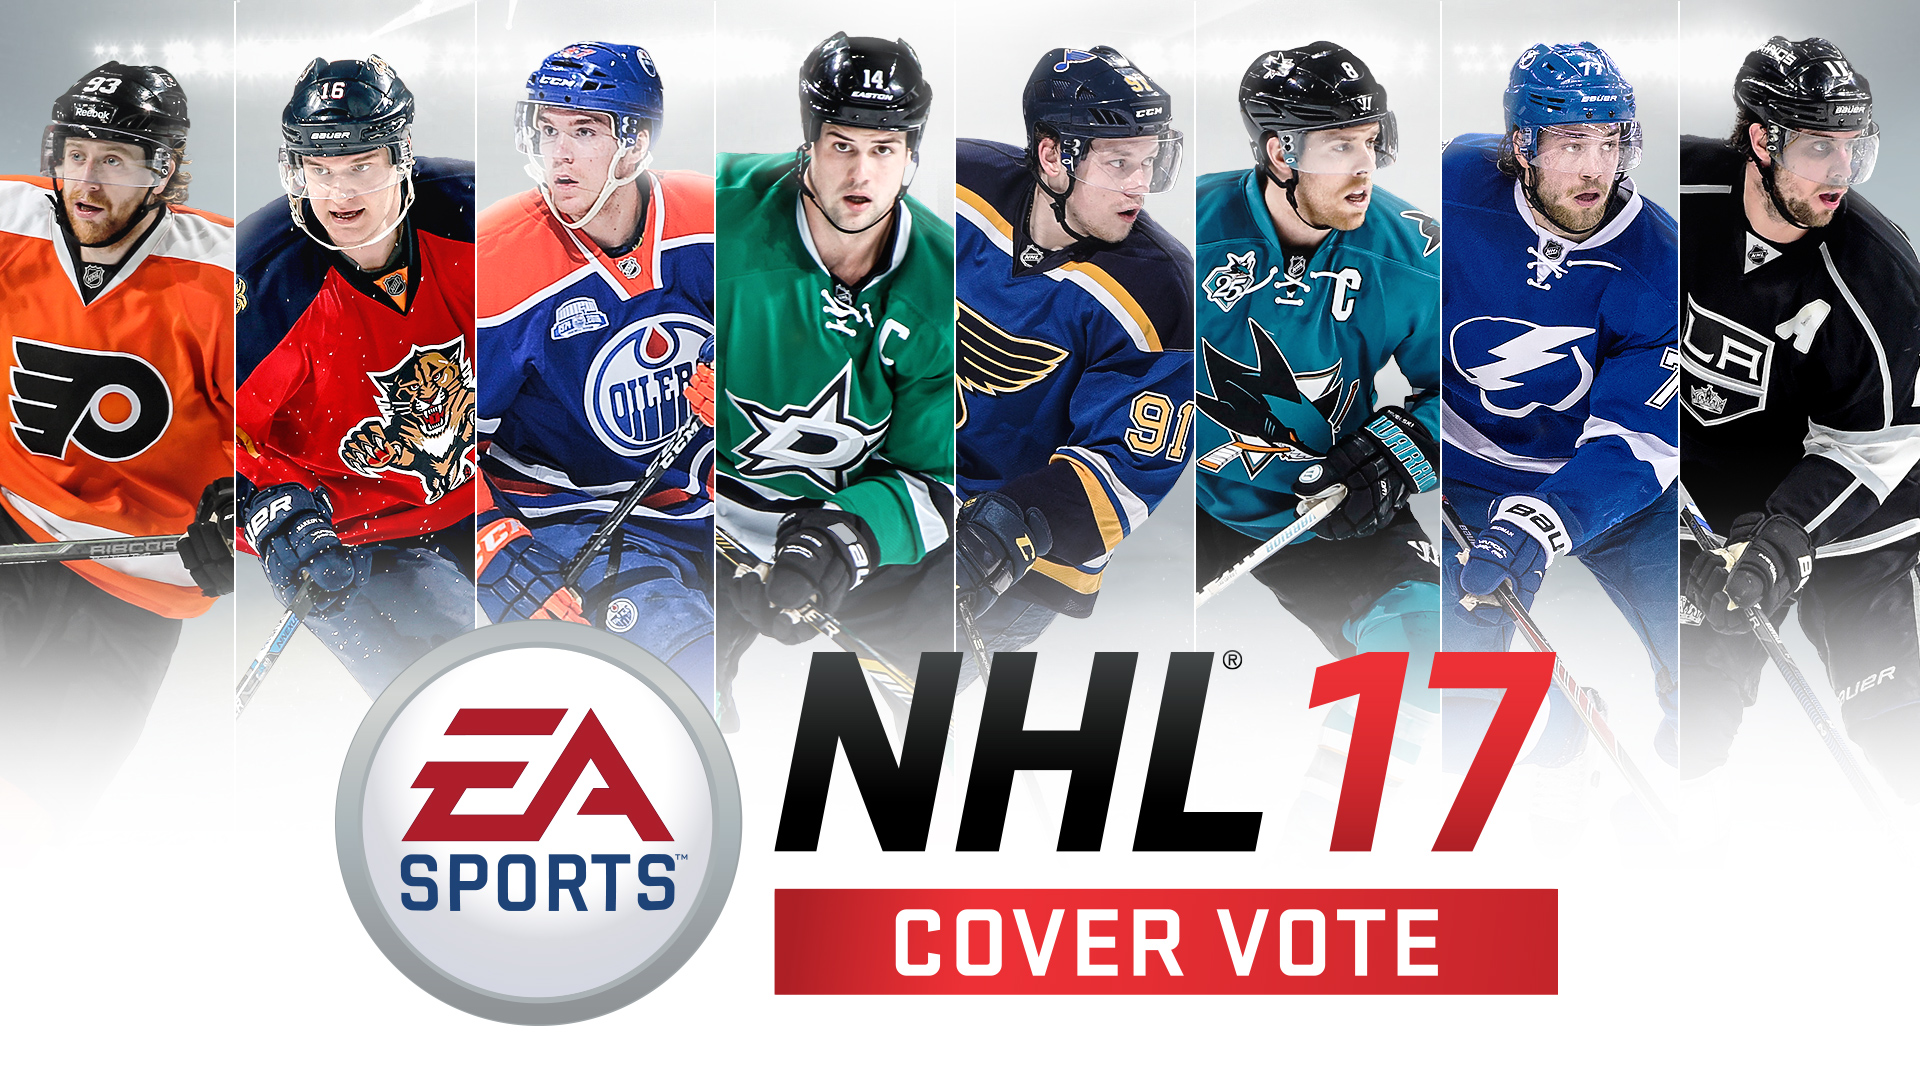 Apr18_NHL17_CoverVoteBannerV2_1920x1080.jpg